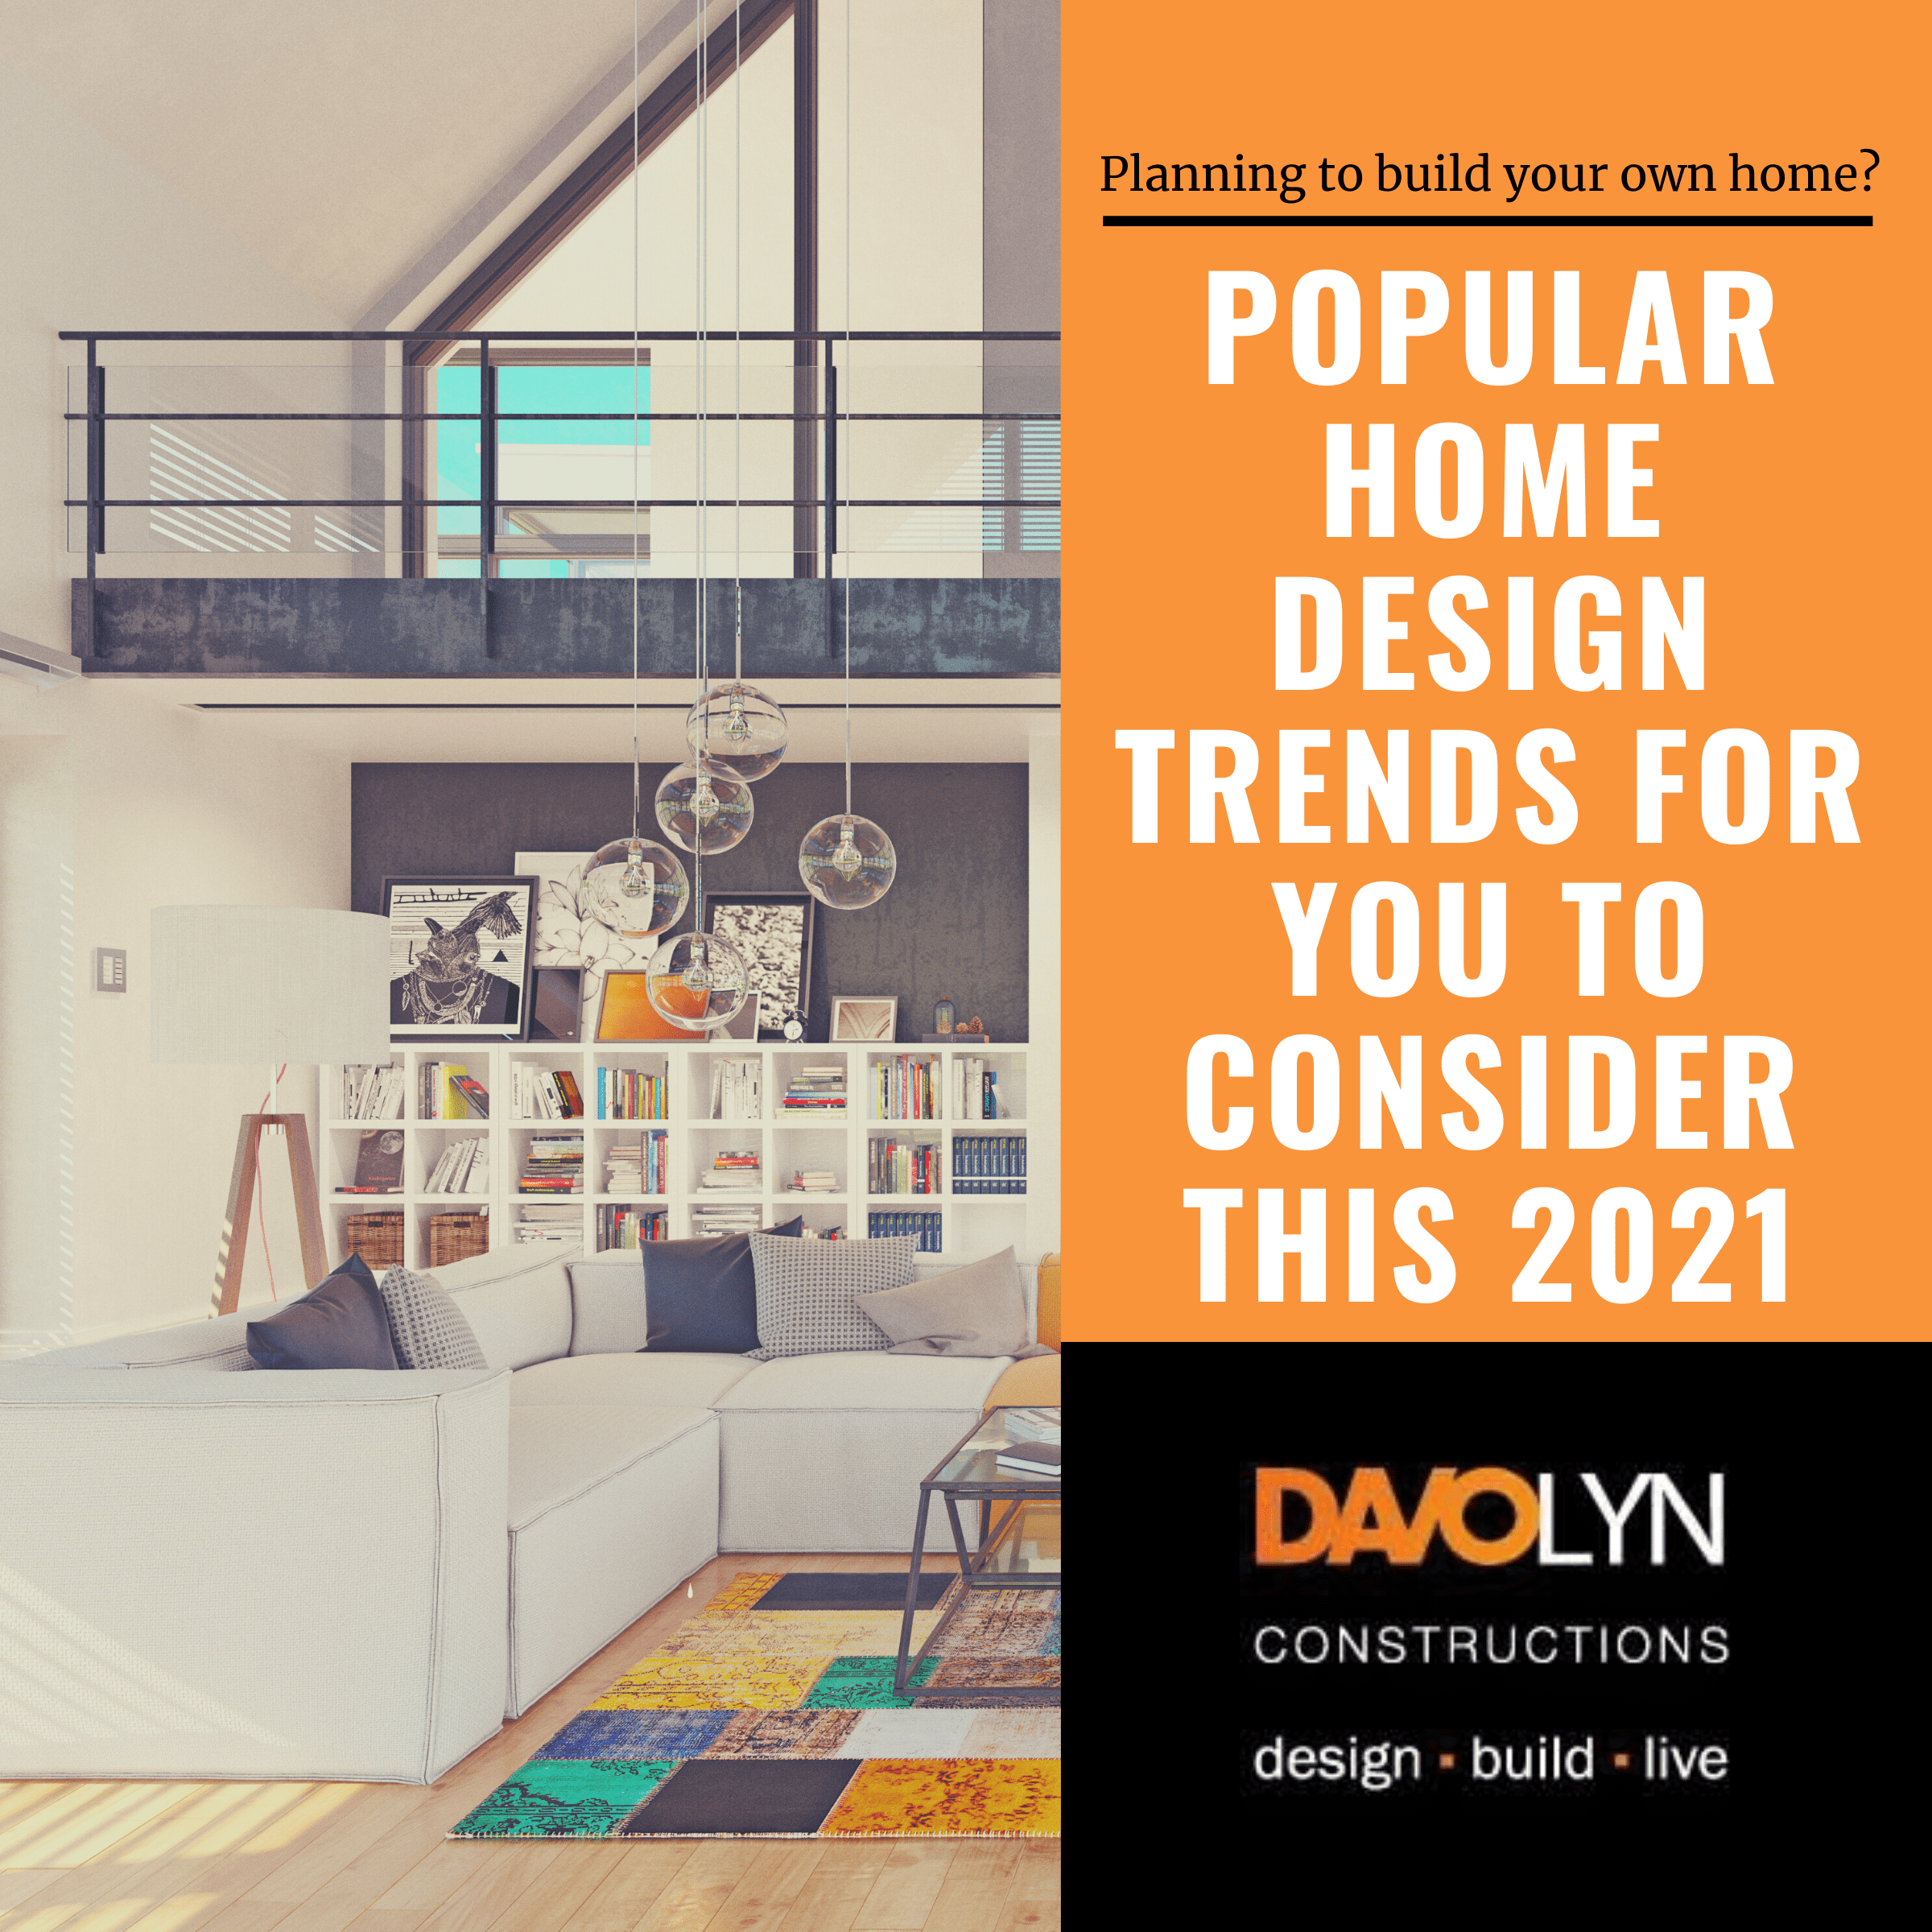 Popular Home Design Trends for You to Consider this 2021